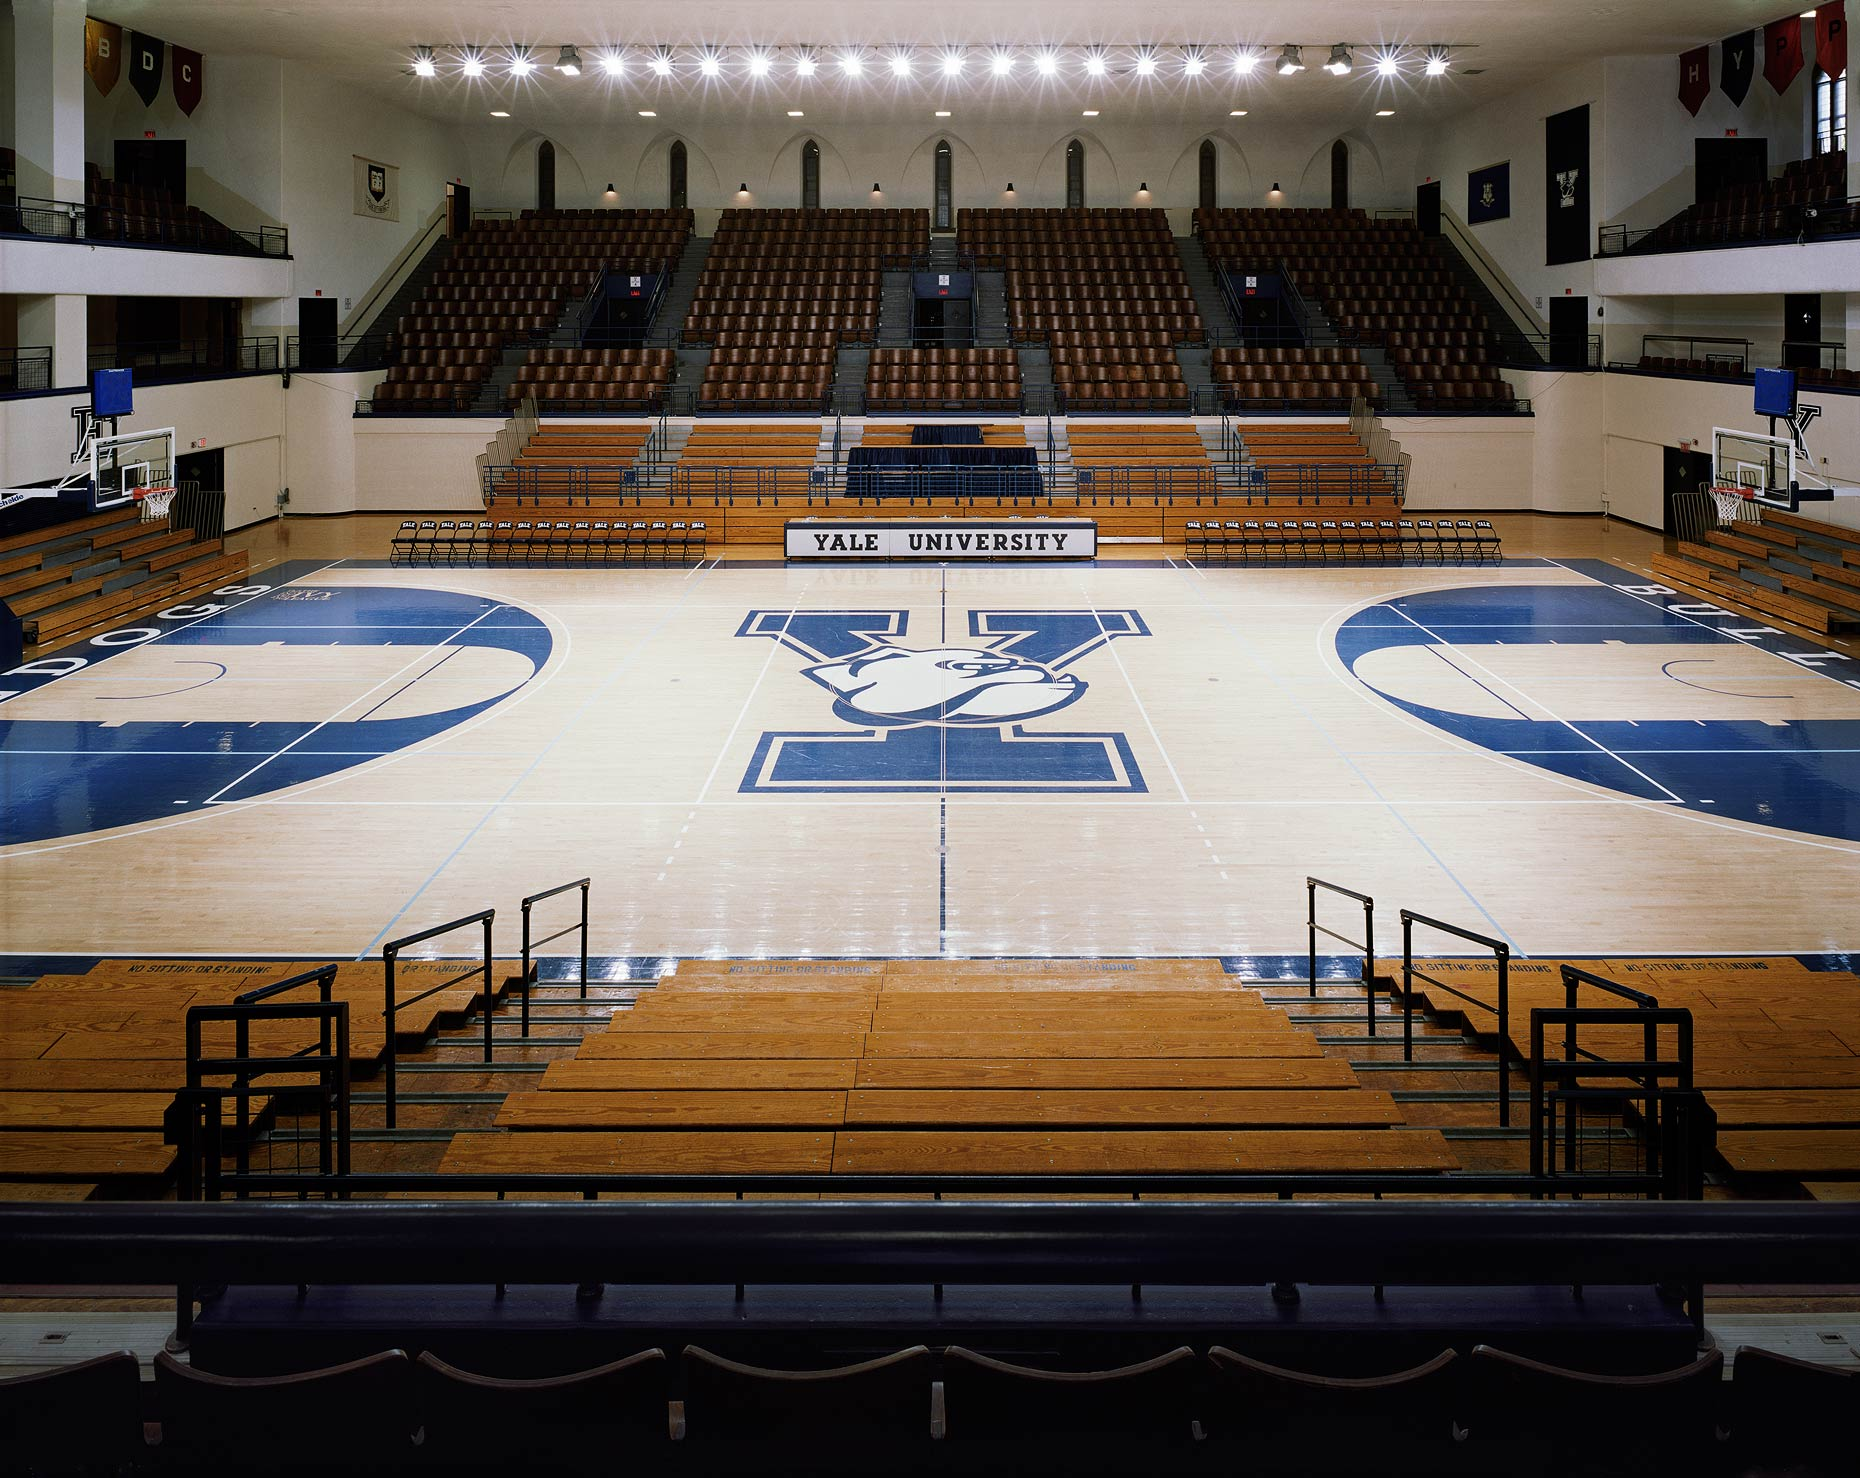 Payne Whitney Gym No. 2, John J. Lee Amphitheater, Yale University, New Haven, Connecticut, 2011